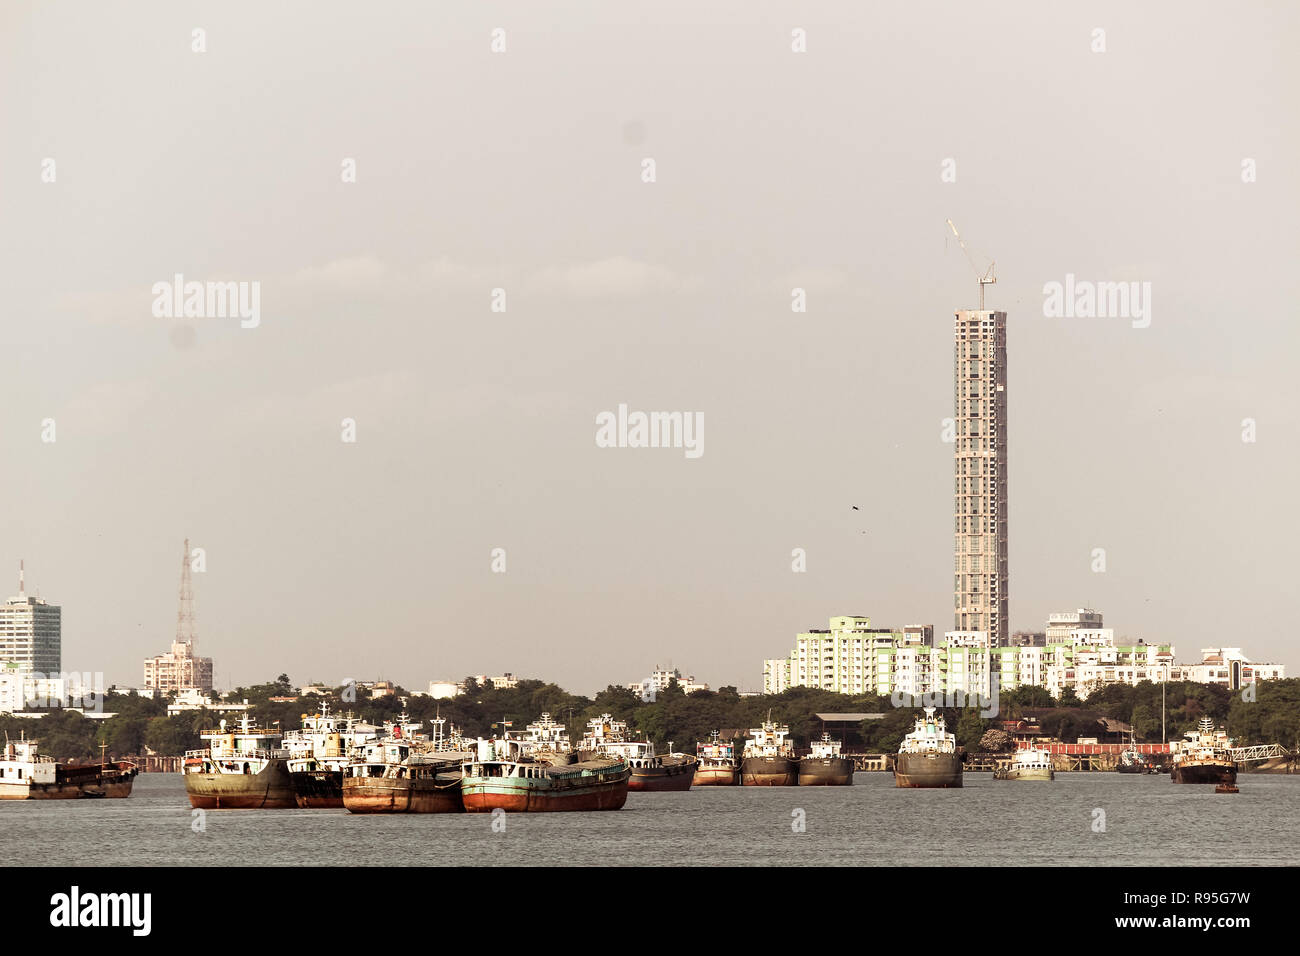 Kolkata, India - May 13, 2018: Beautiful panorama of Kolkata city on the river Hooghly in a sunny day. Fishing trallers are floating on the river. - Stock Image